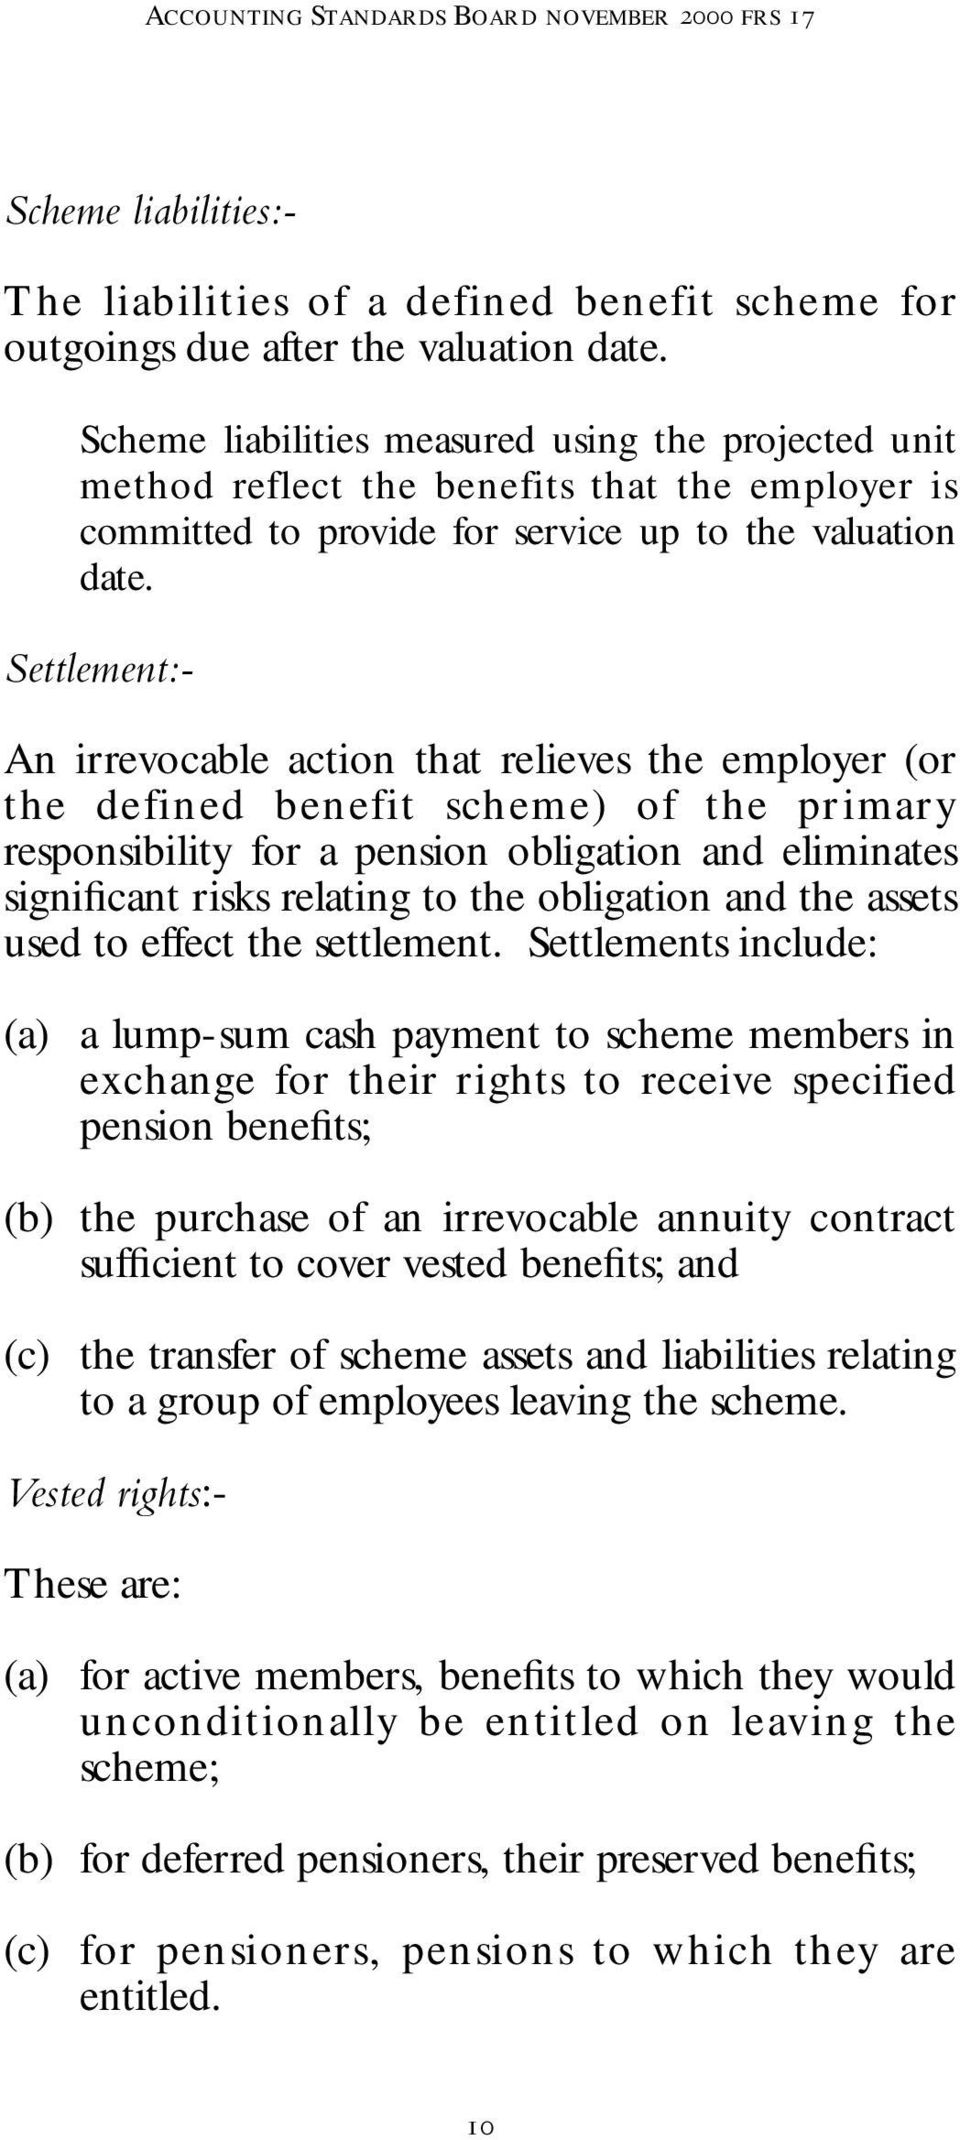 Scheme liabilities:- Settlement:- An irrevocable action that relieves the employer (or the defined benefit scheme) of the primary responsibility for a pension obligation and eliminates significant